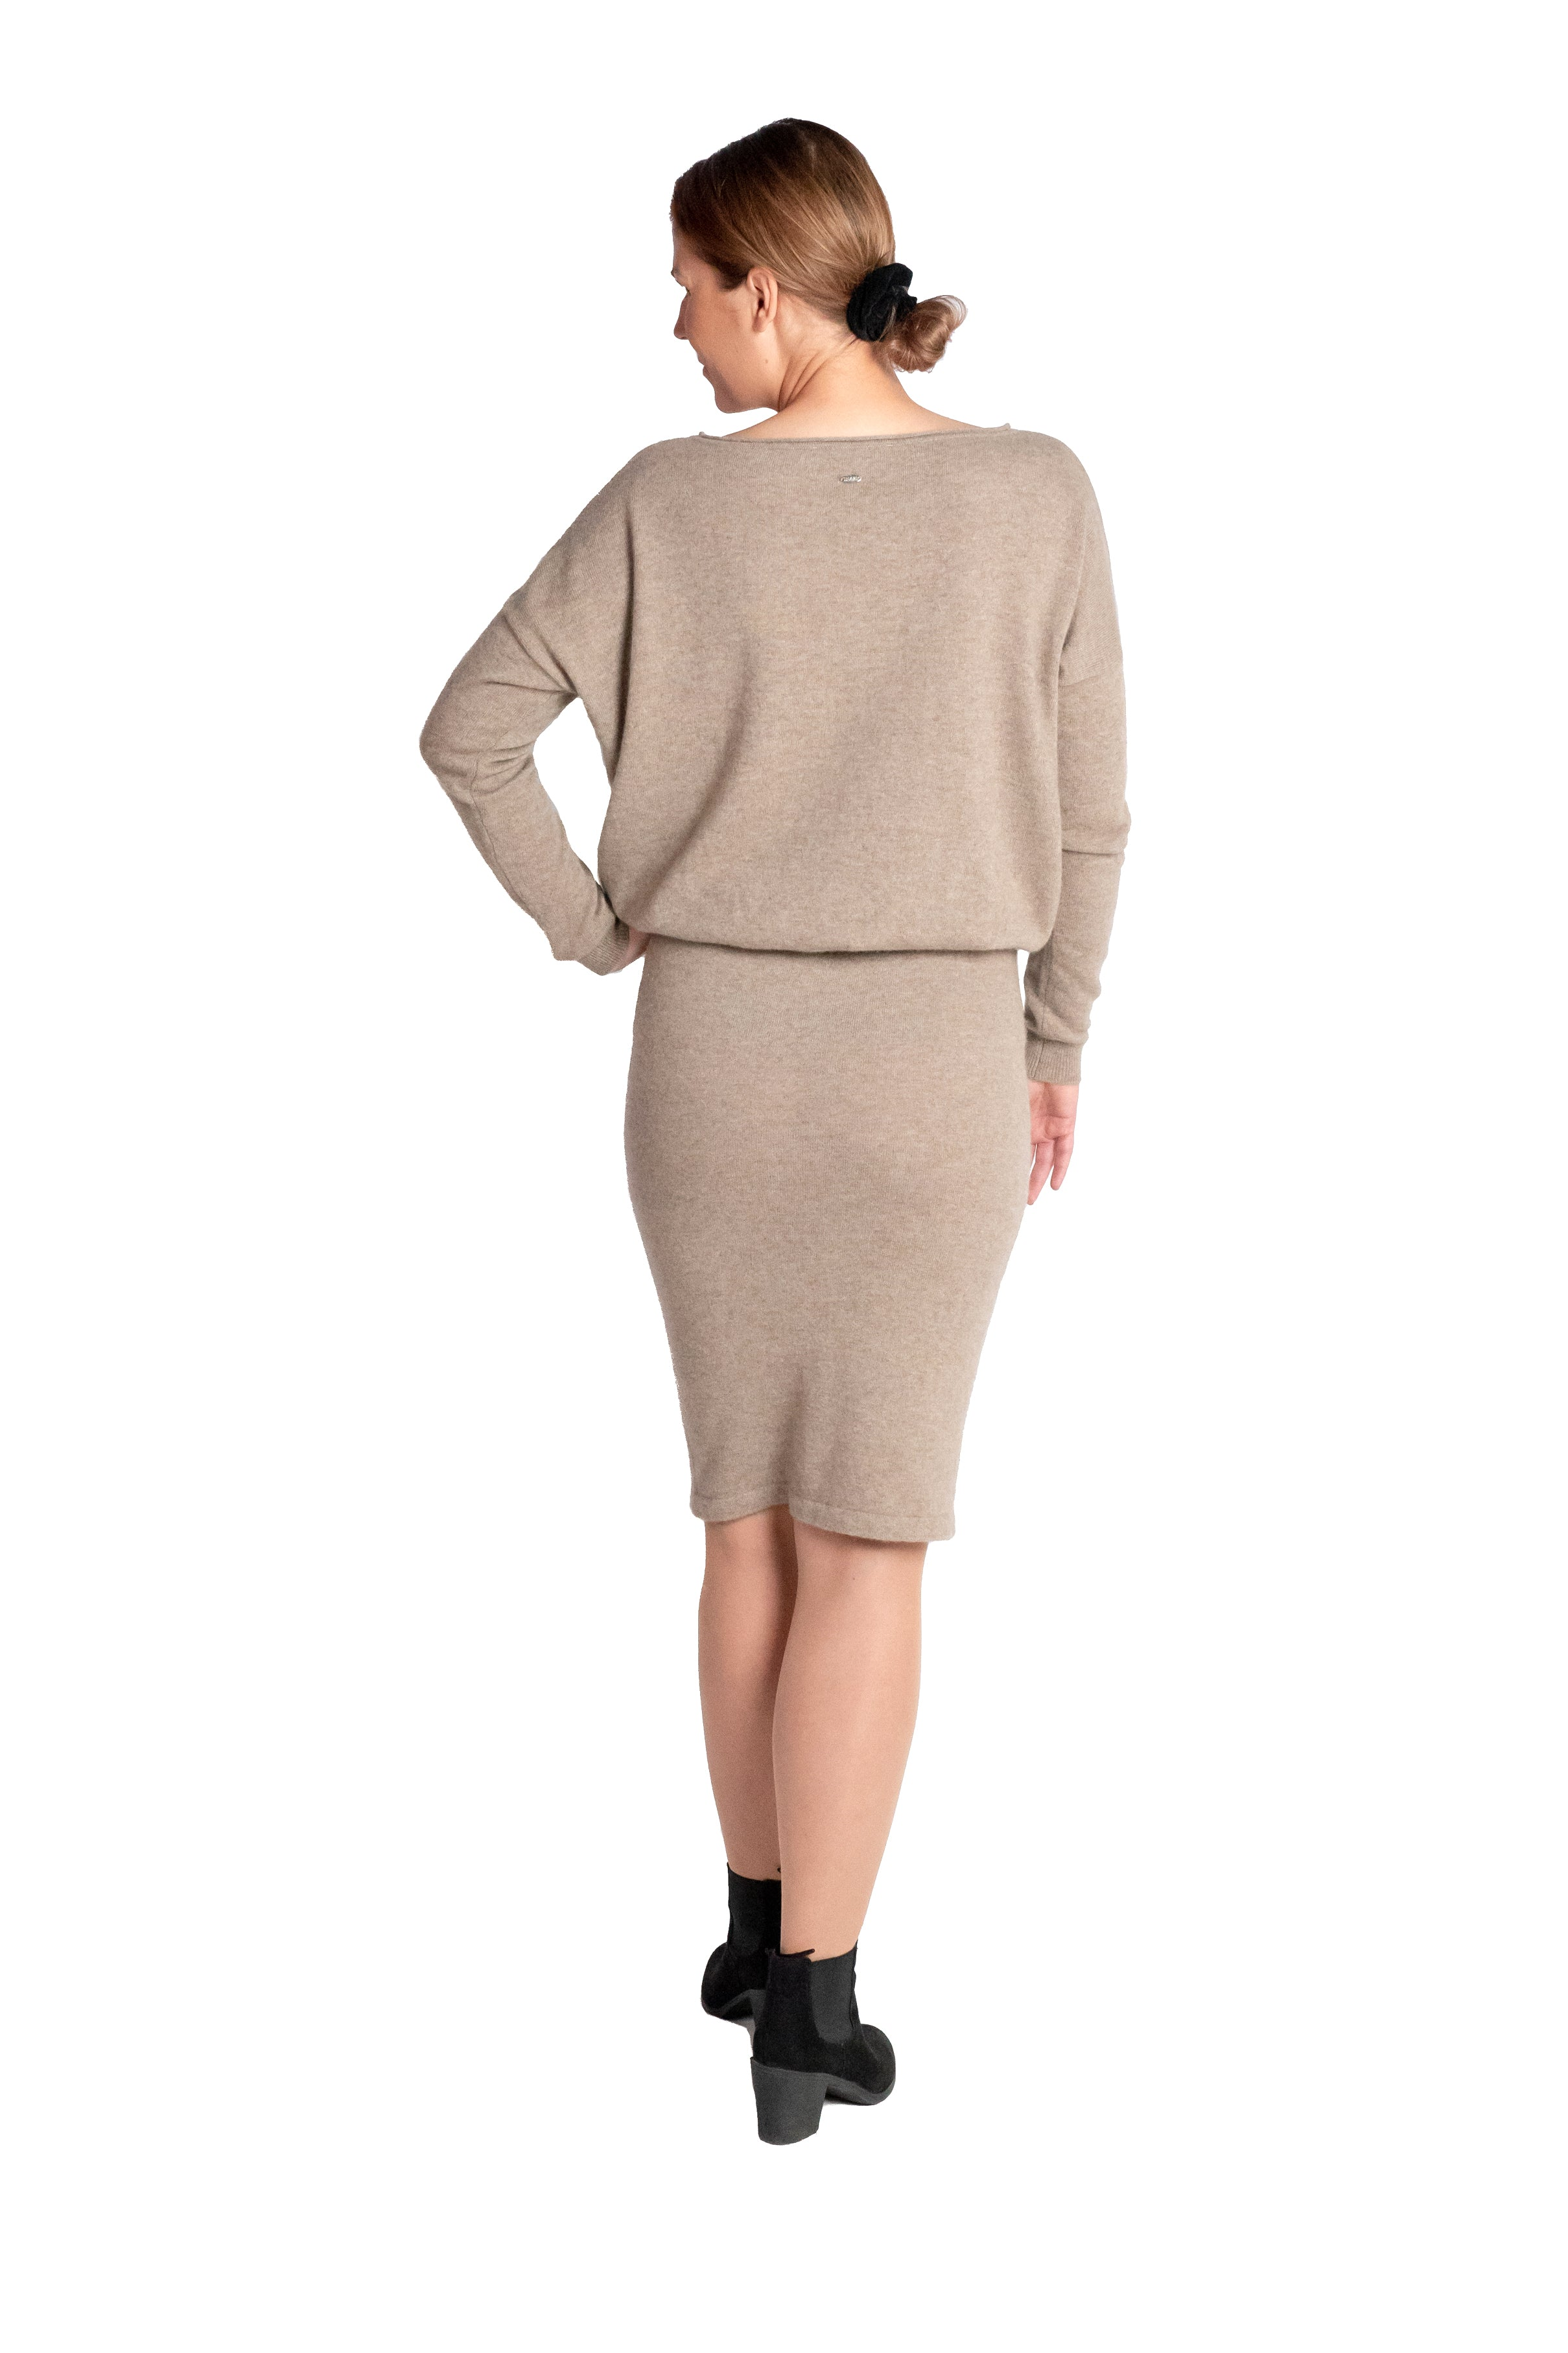 Inari Women's brown cashmere skirt - back side - 100% high-quality cashmere - Inari-clothing.fi